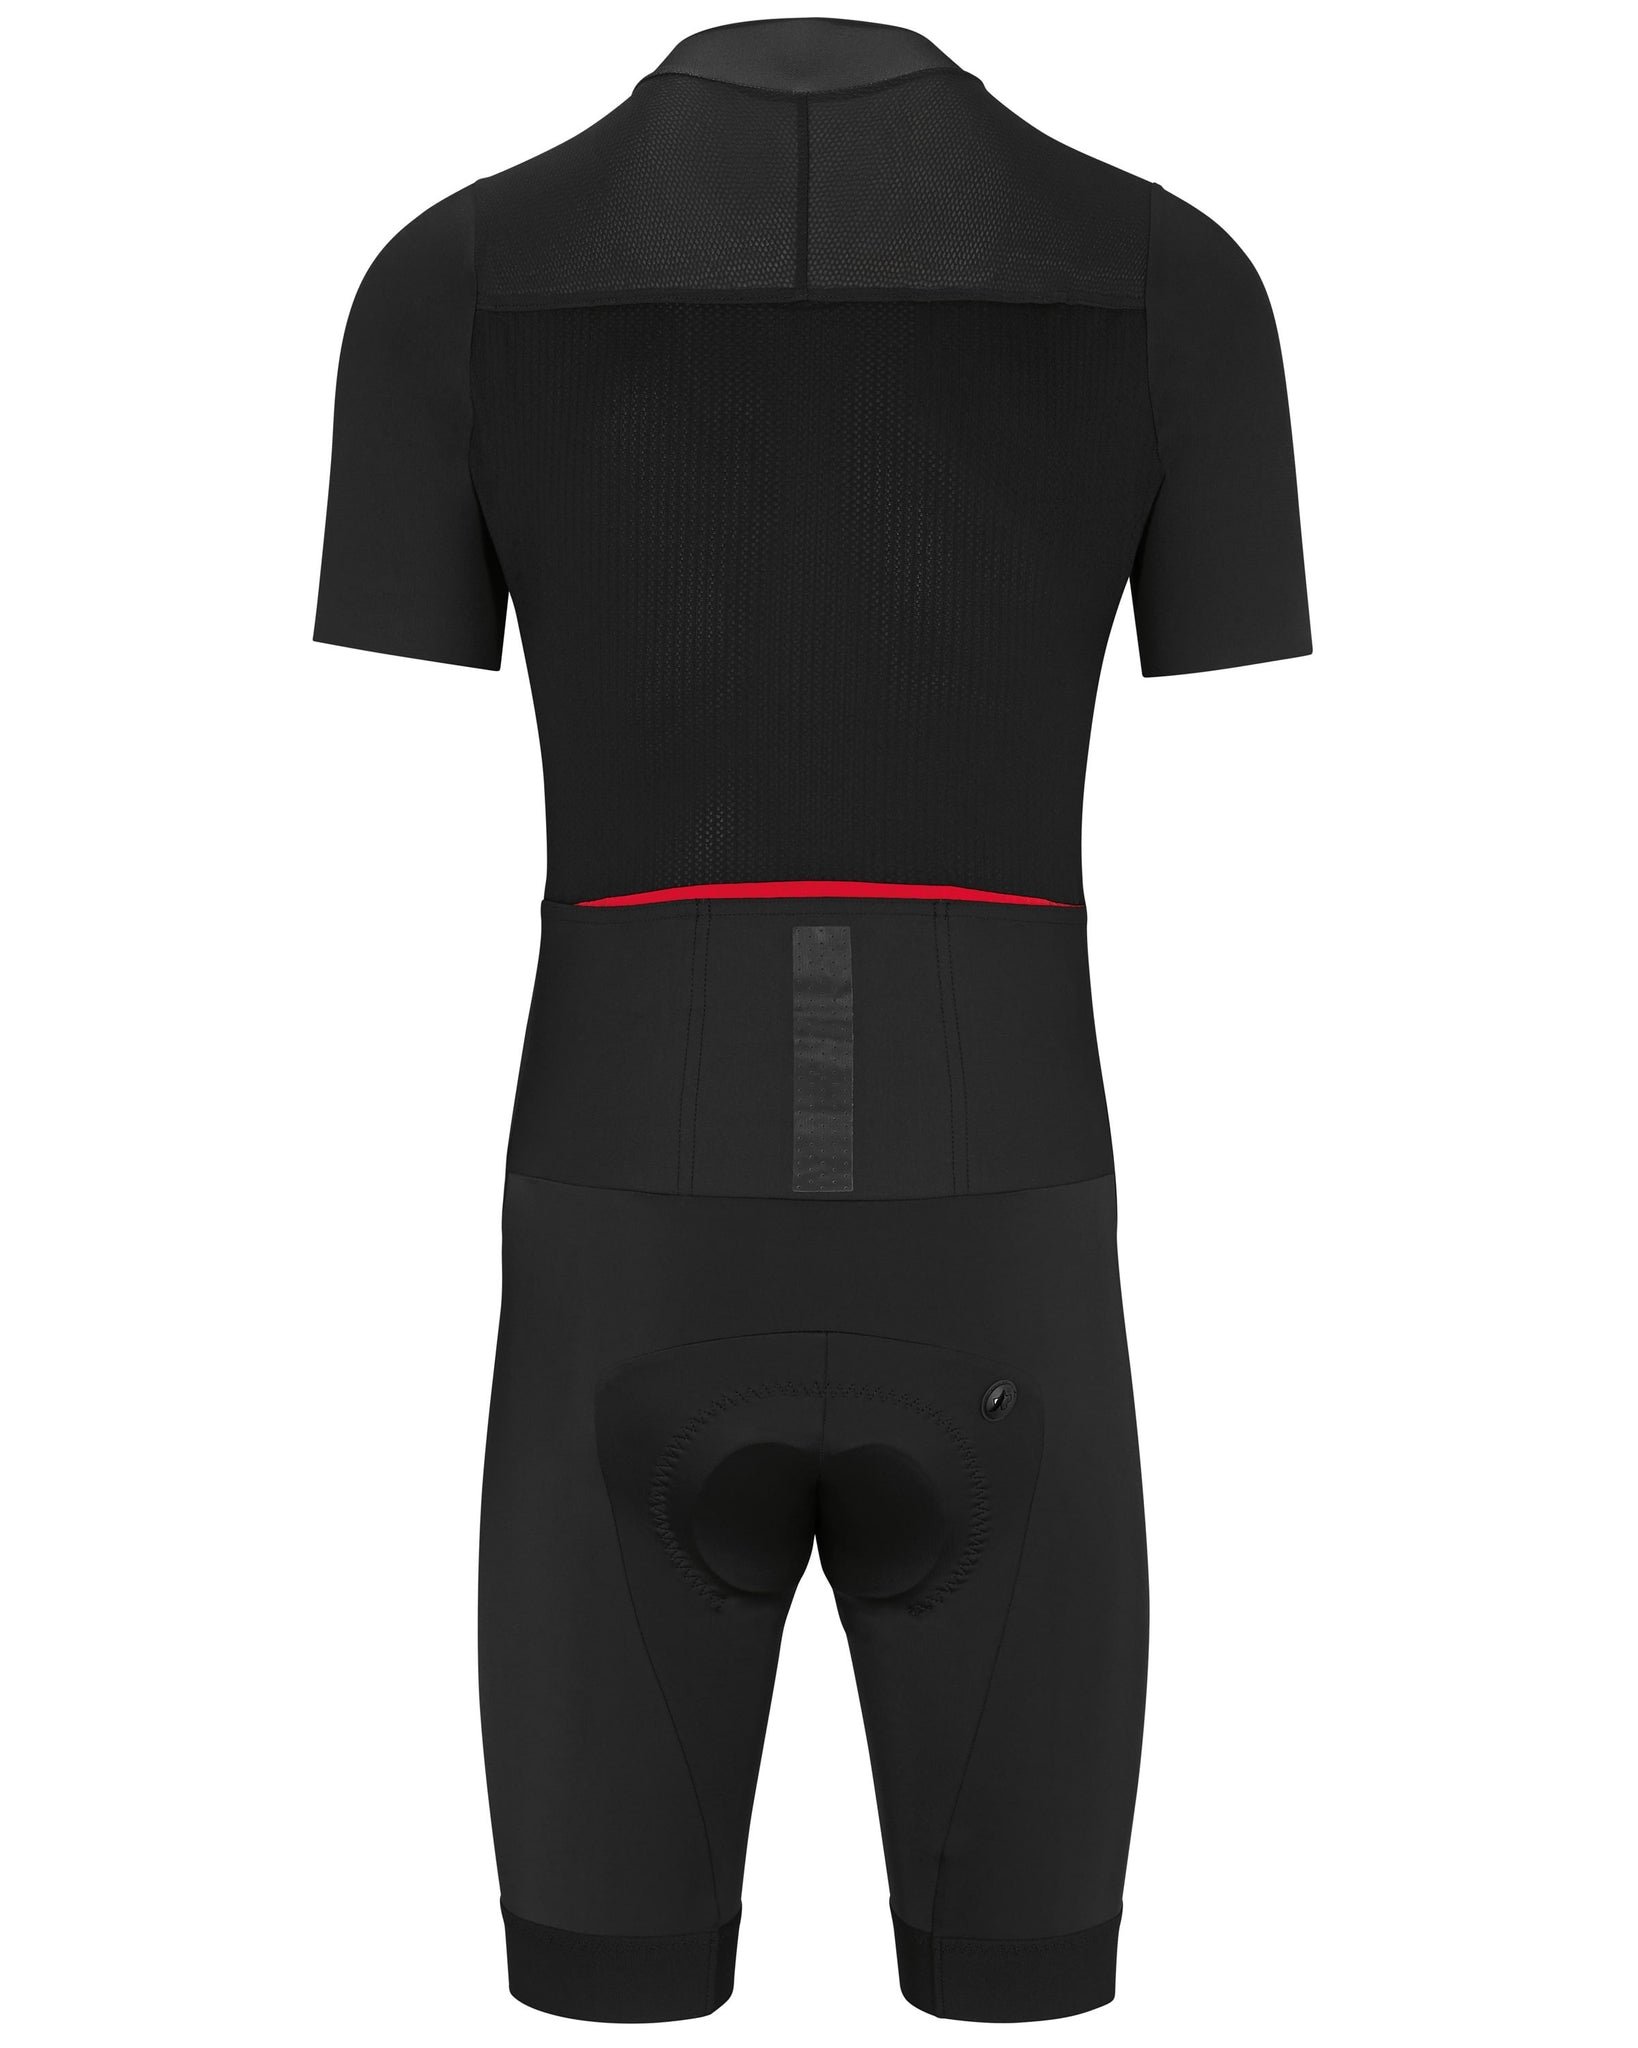 【ASSOS / アソス】LE HOUDINI RS AERO ROADSUIT S9 prof.black(ロード向け エアロワンピース)